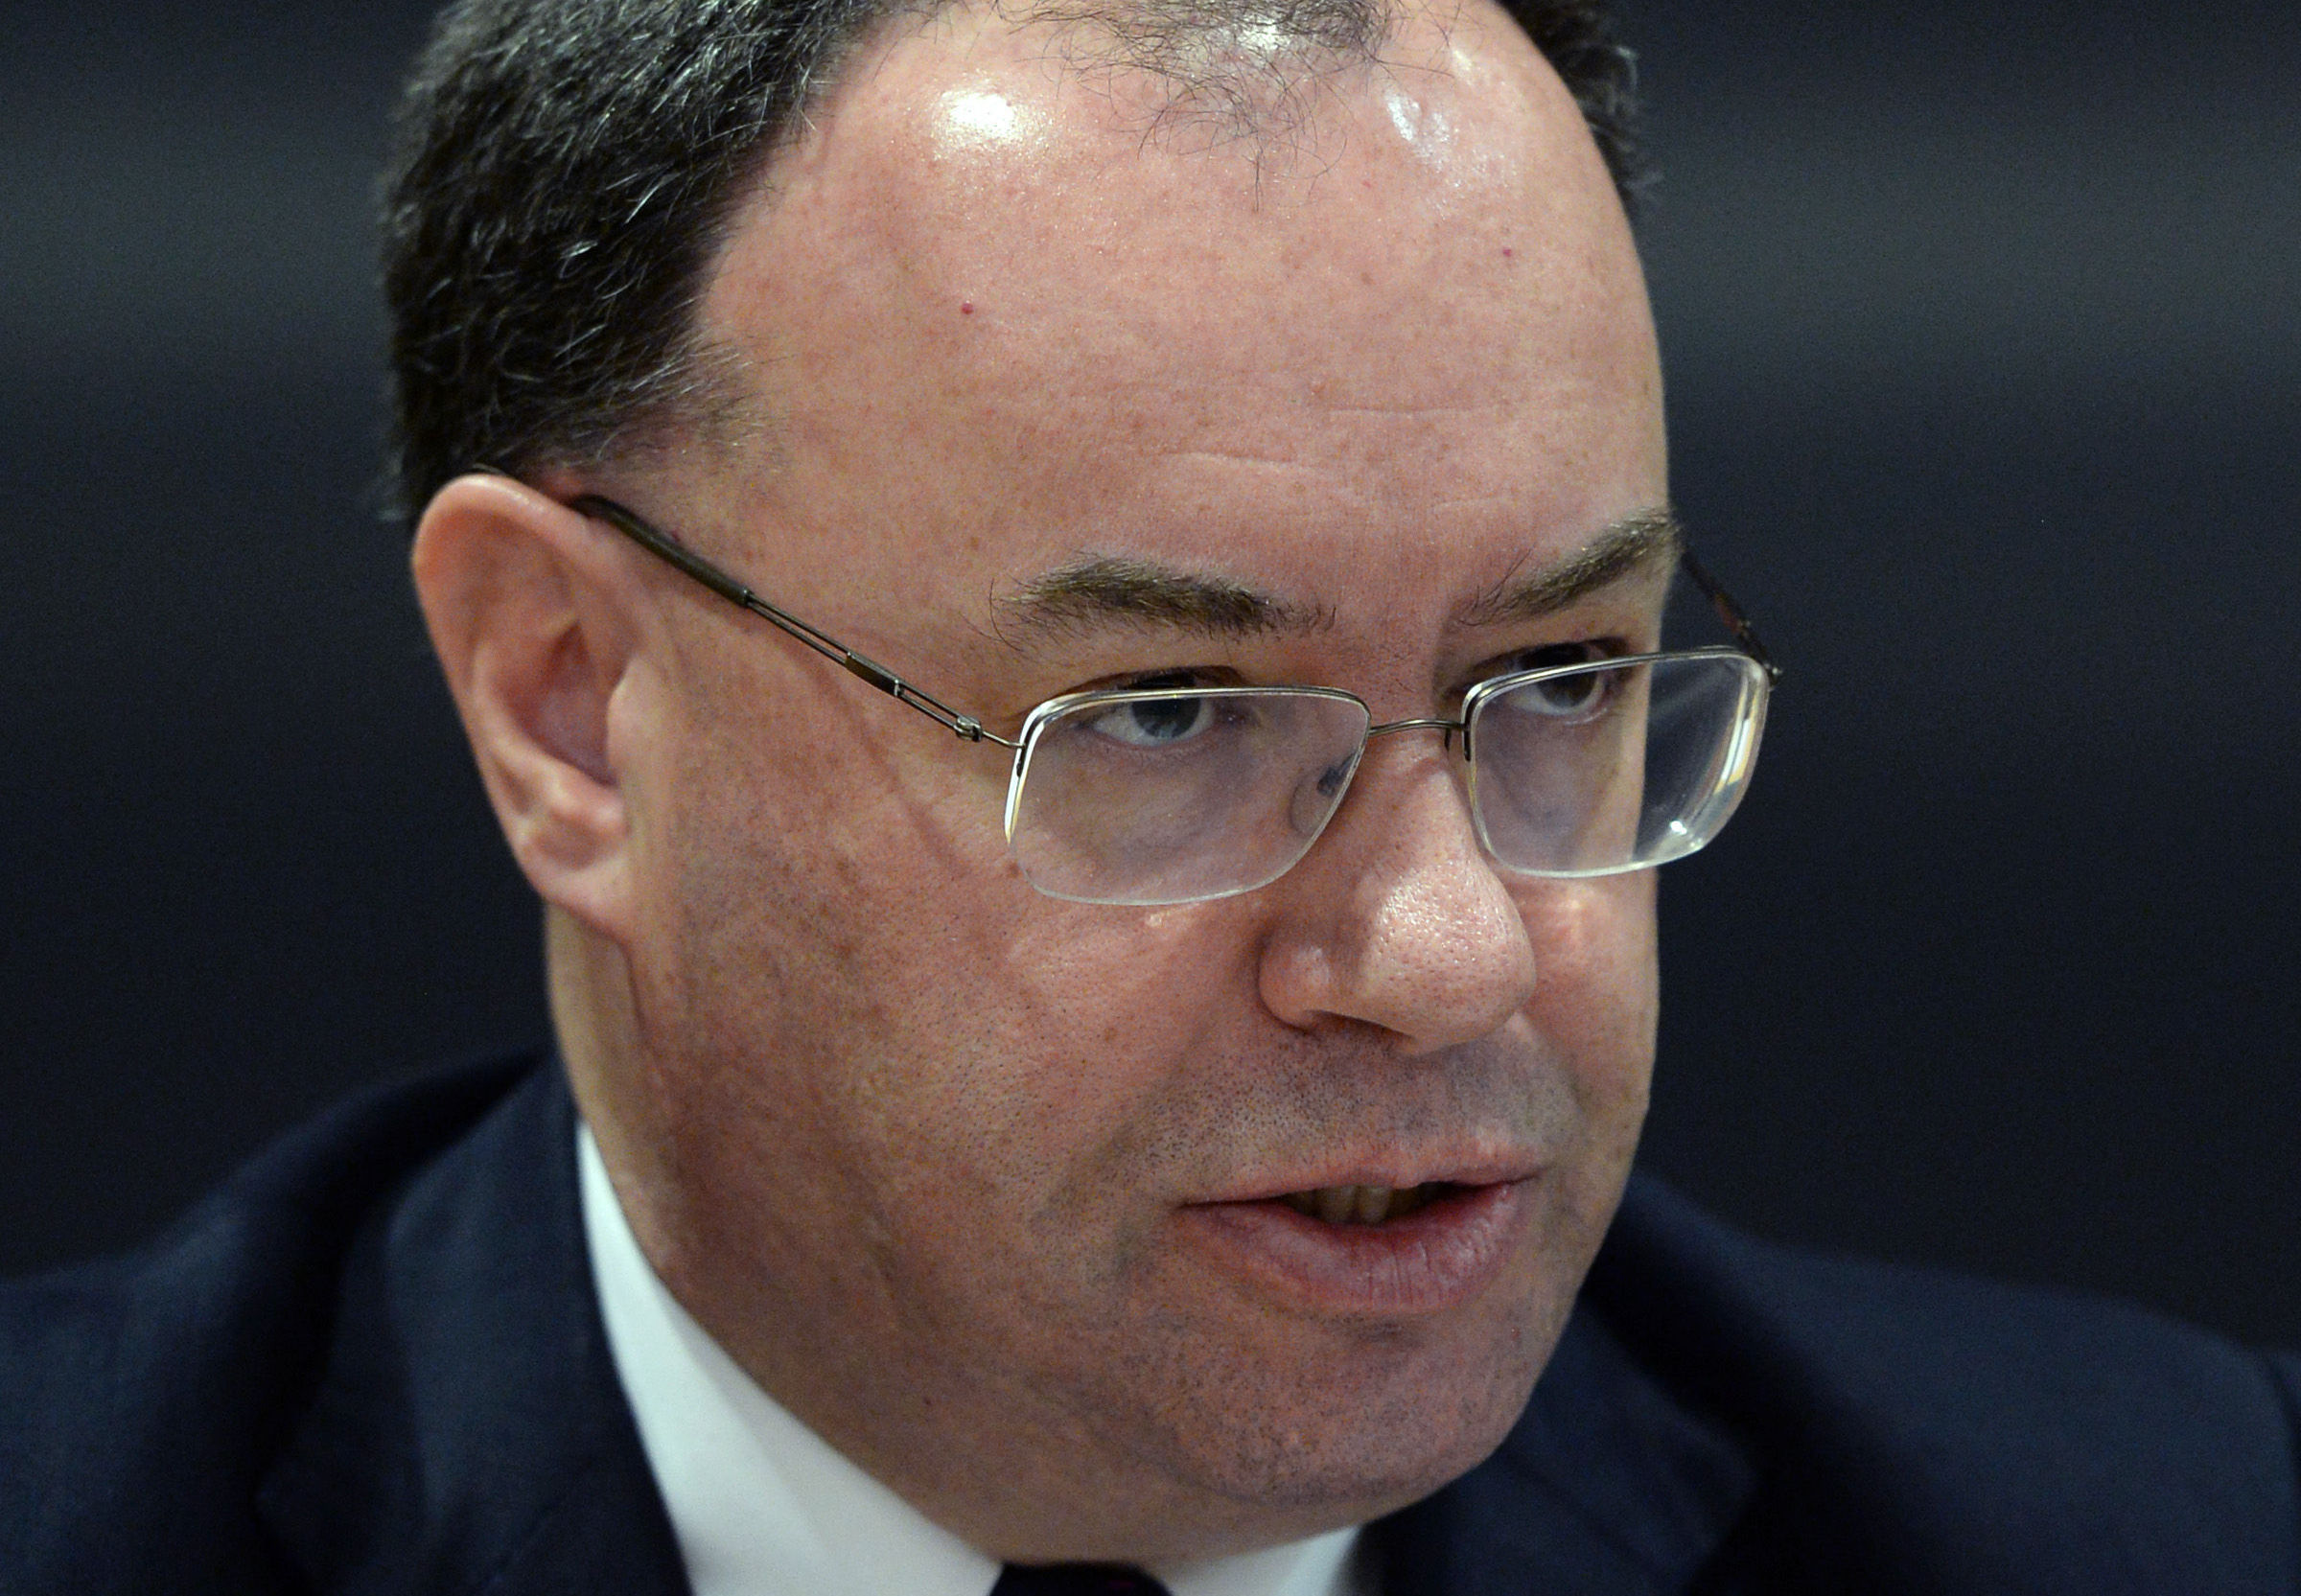 Andrew Bailey, chief executive of the Financial Conduct Authority